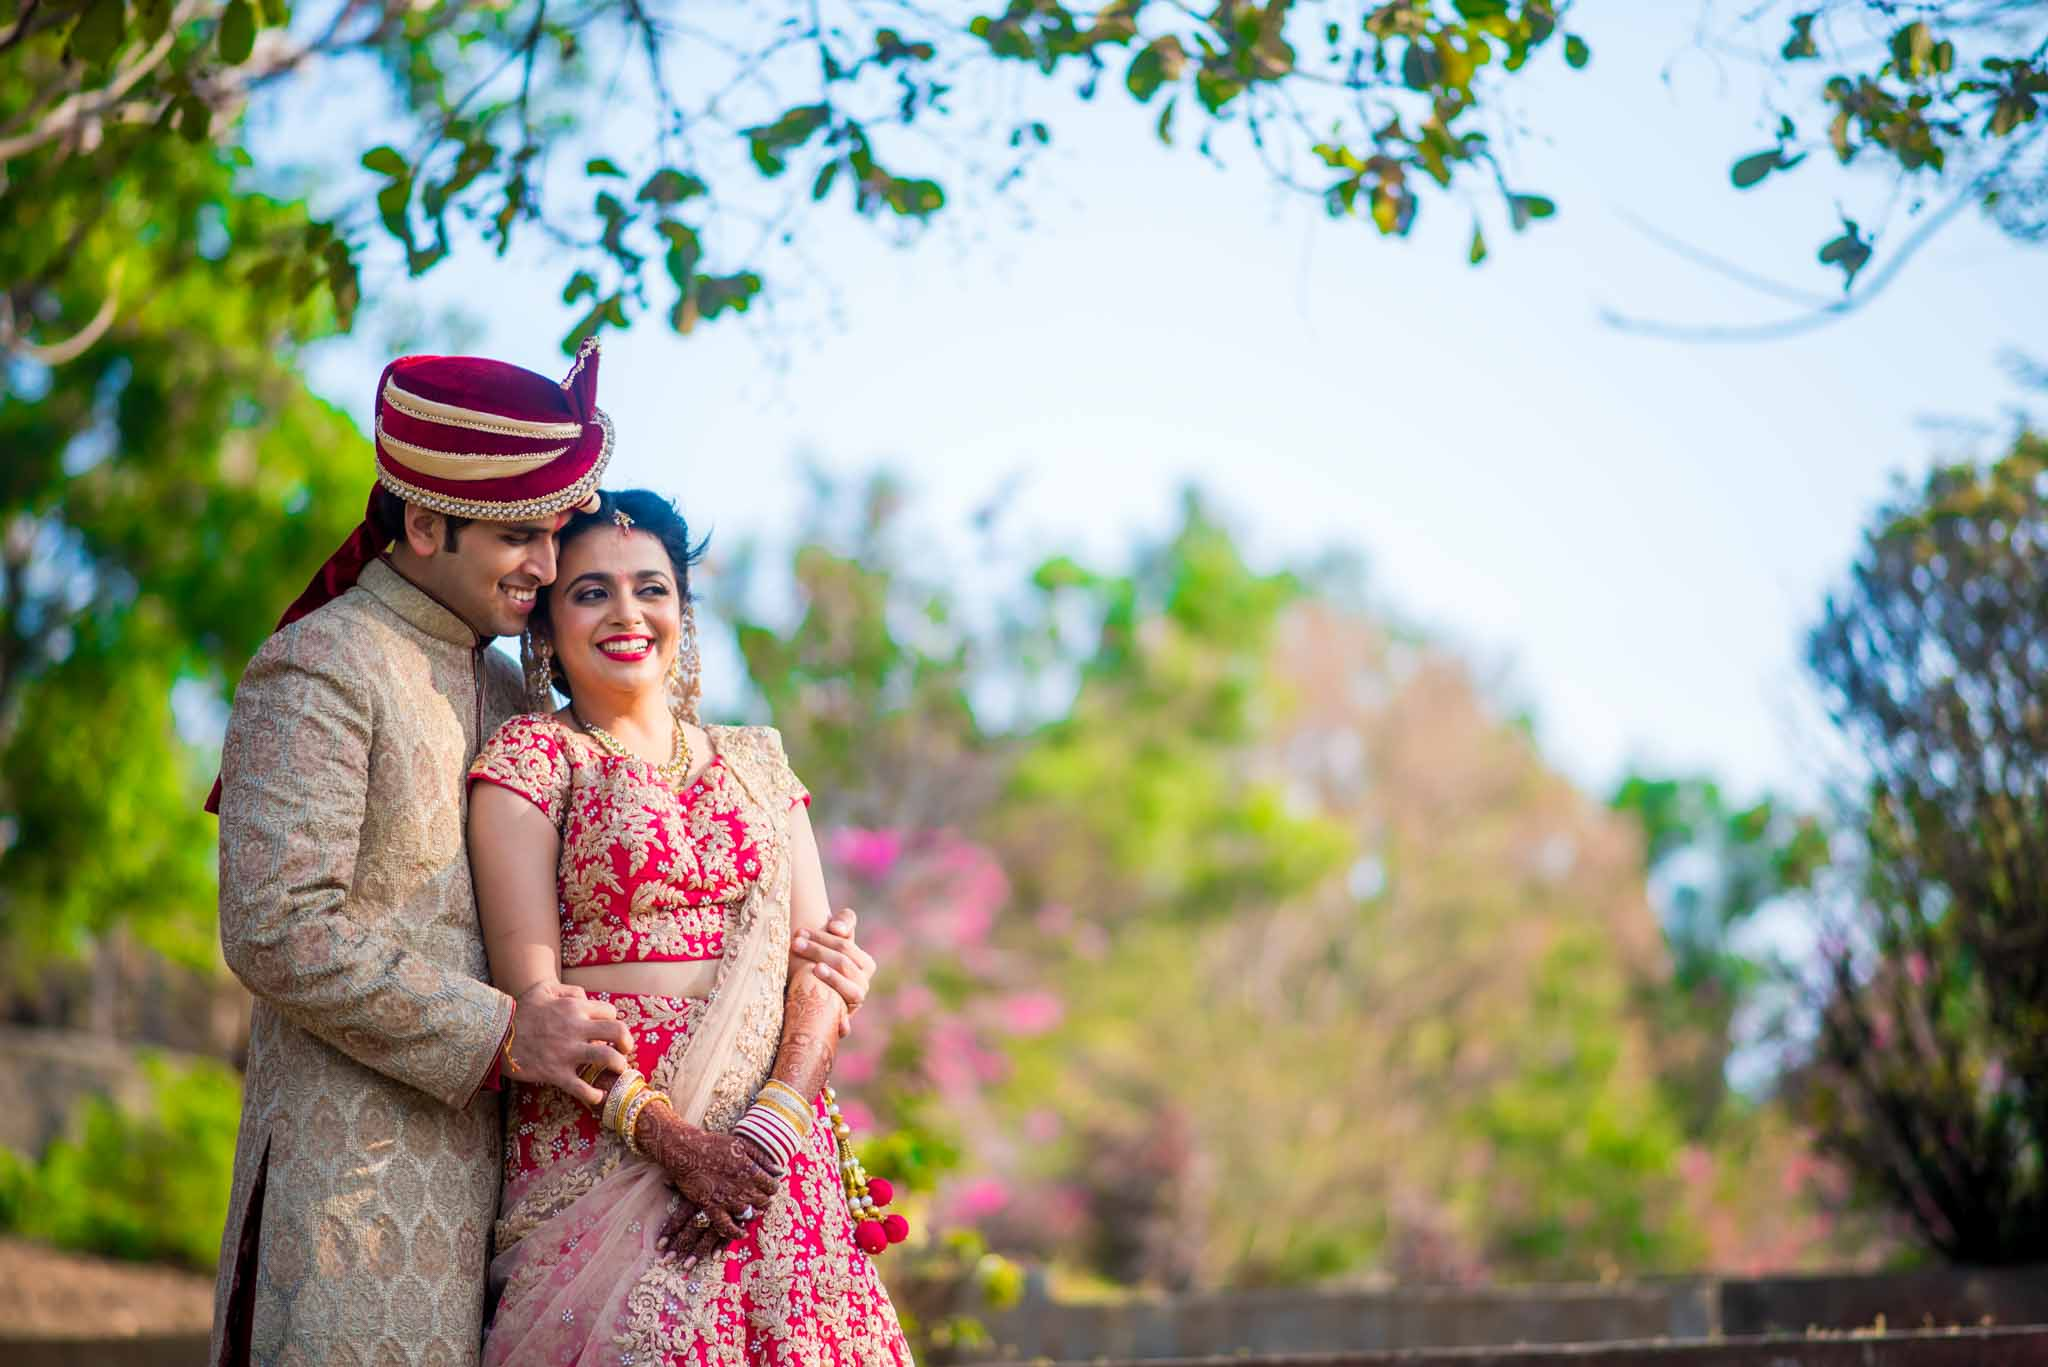 mumbai-candid-photography-wedding-whatknot-kamal-amrohi-studios-54